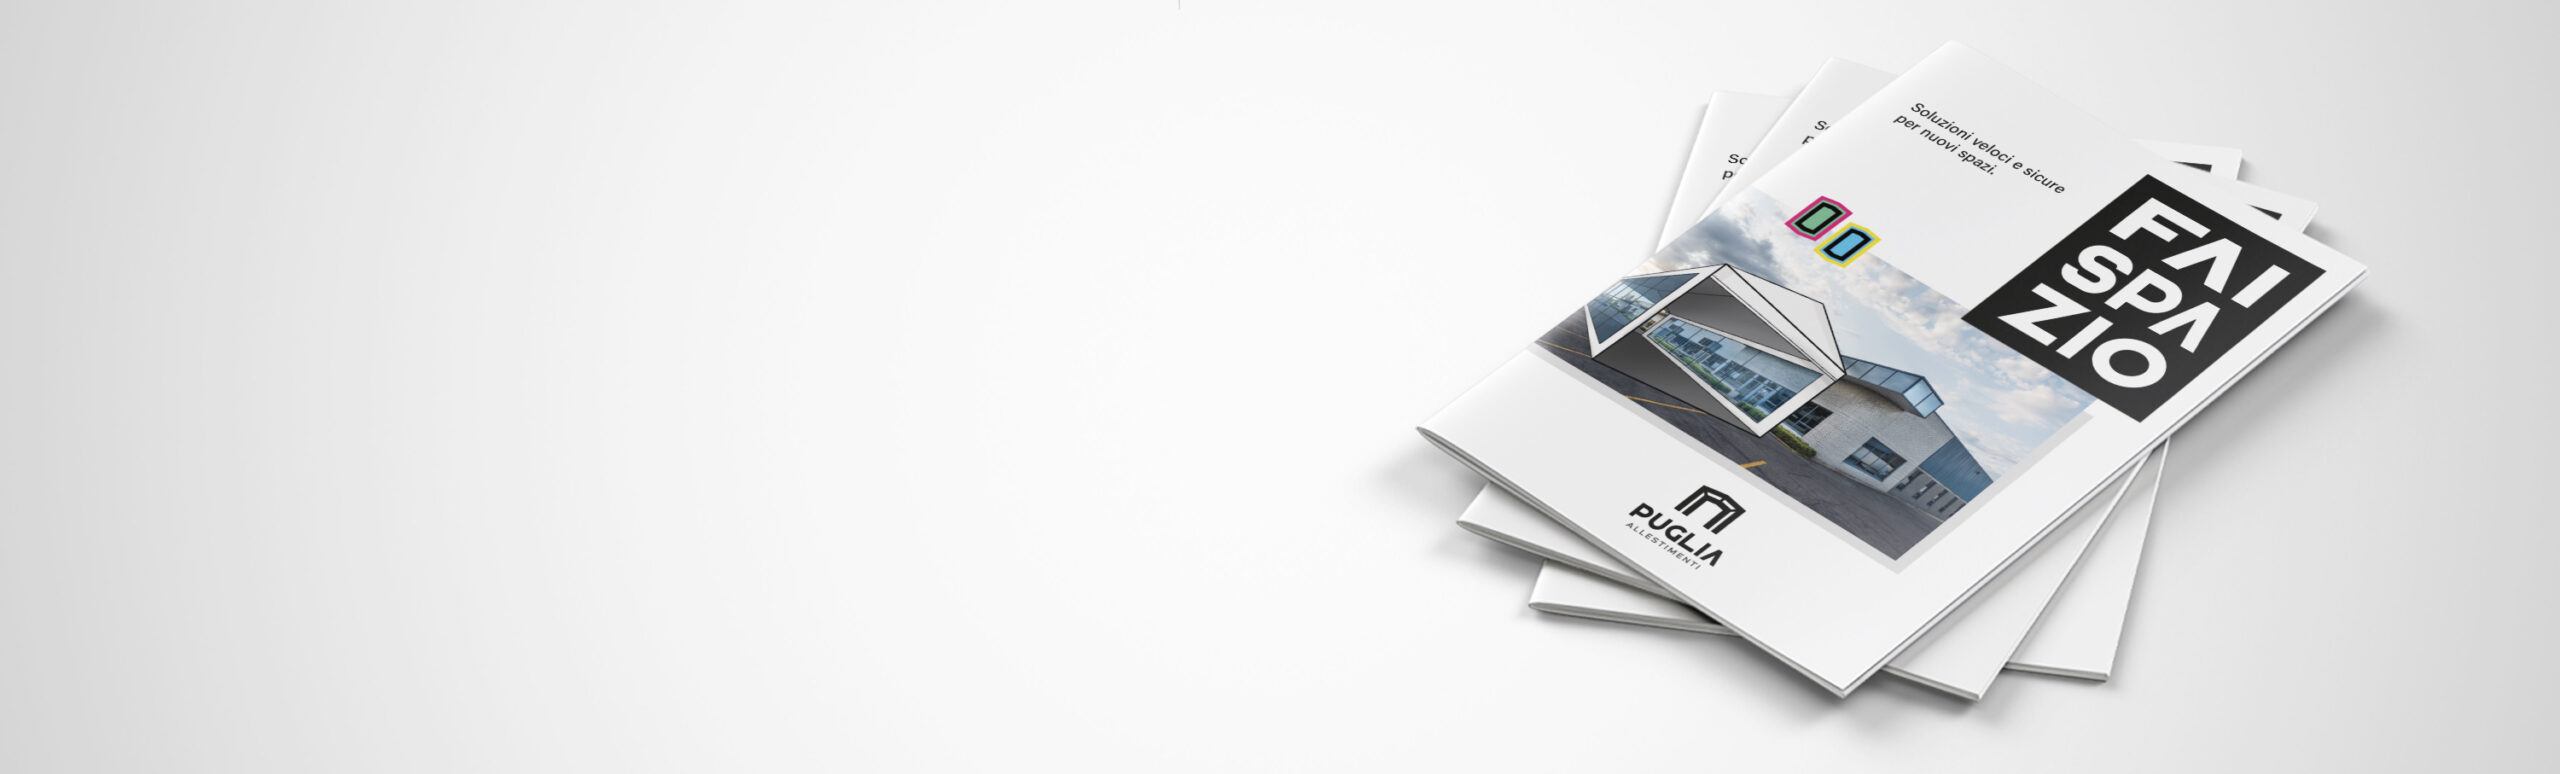 background-banner-copia-scaled.jpg